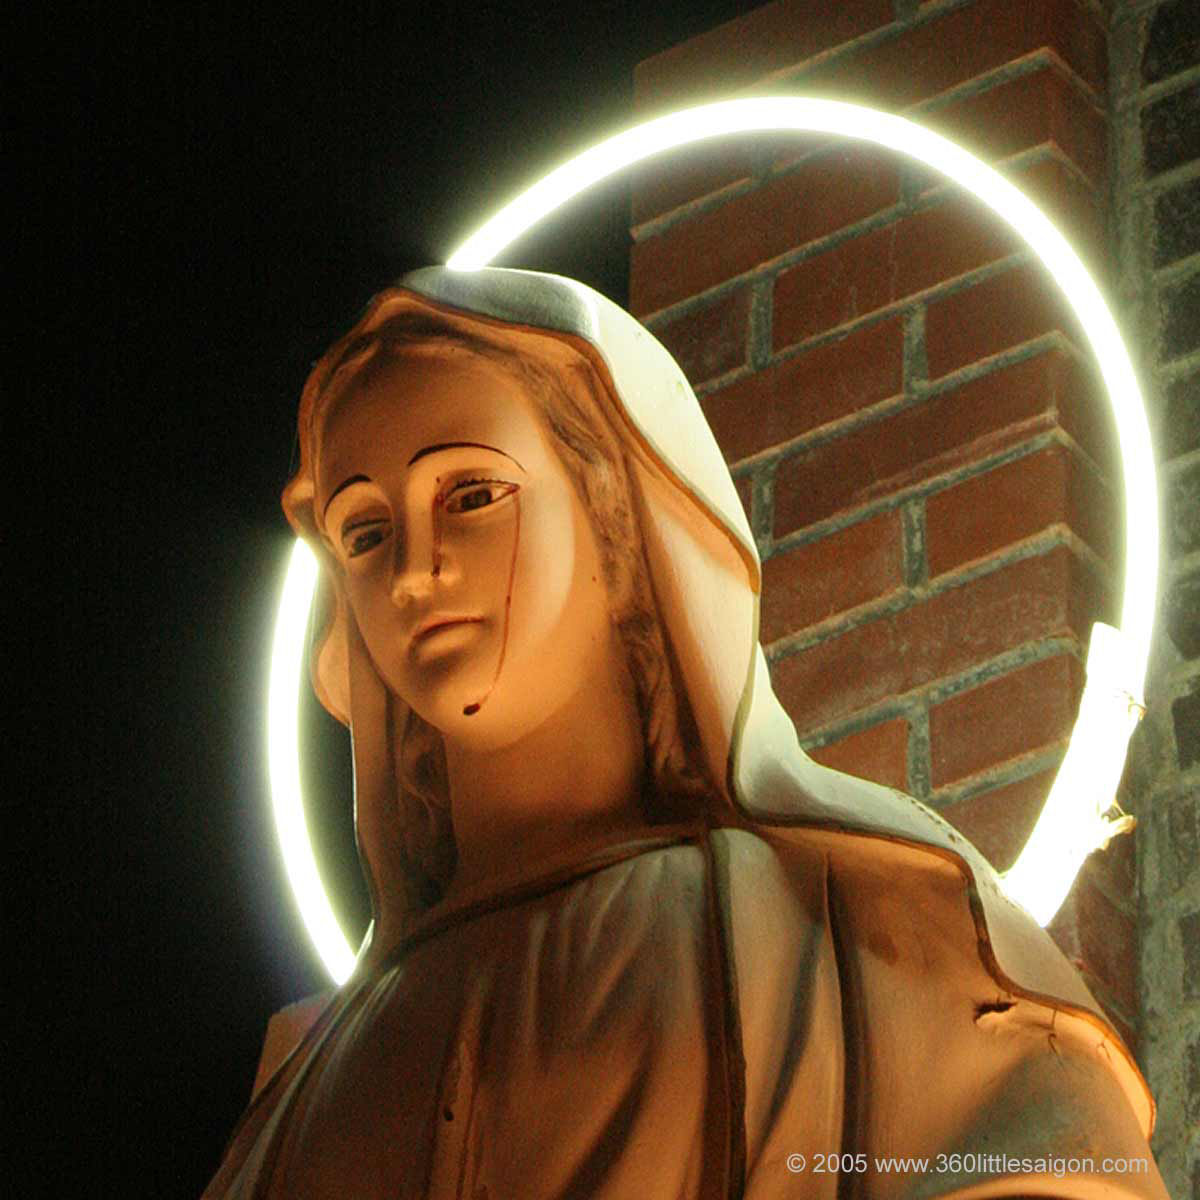 pics of virgin mary